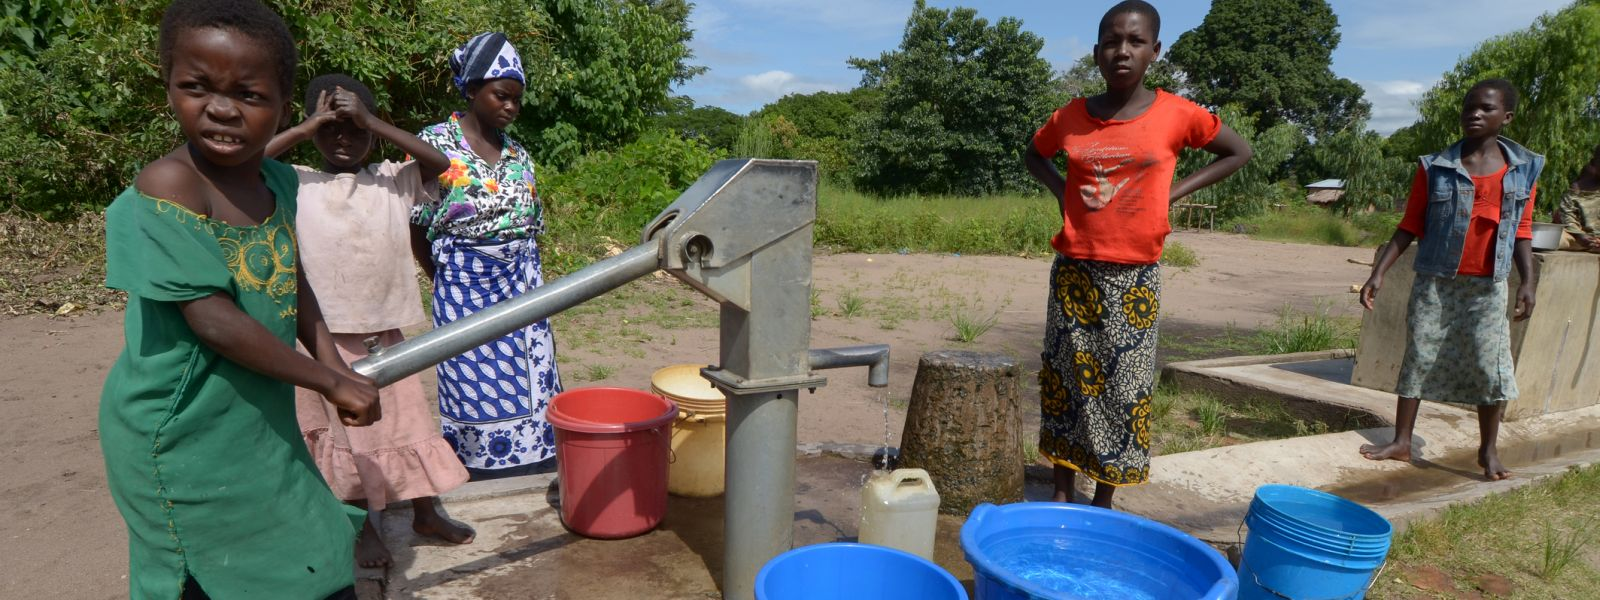 Children operate a water pump in Malawi